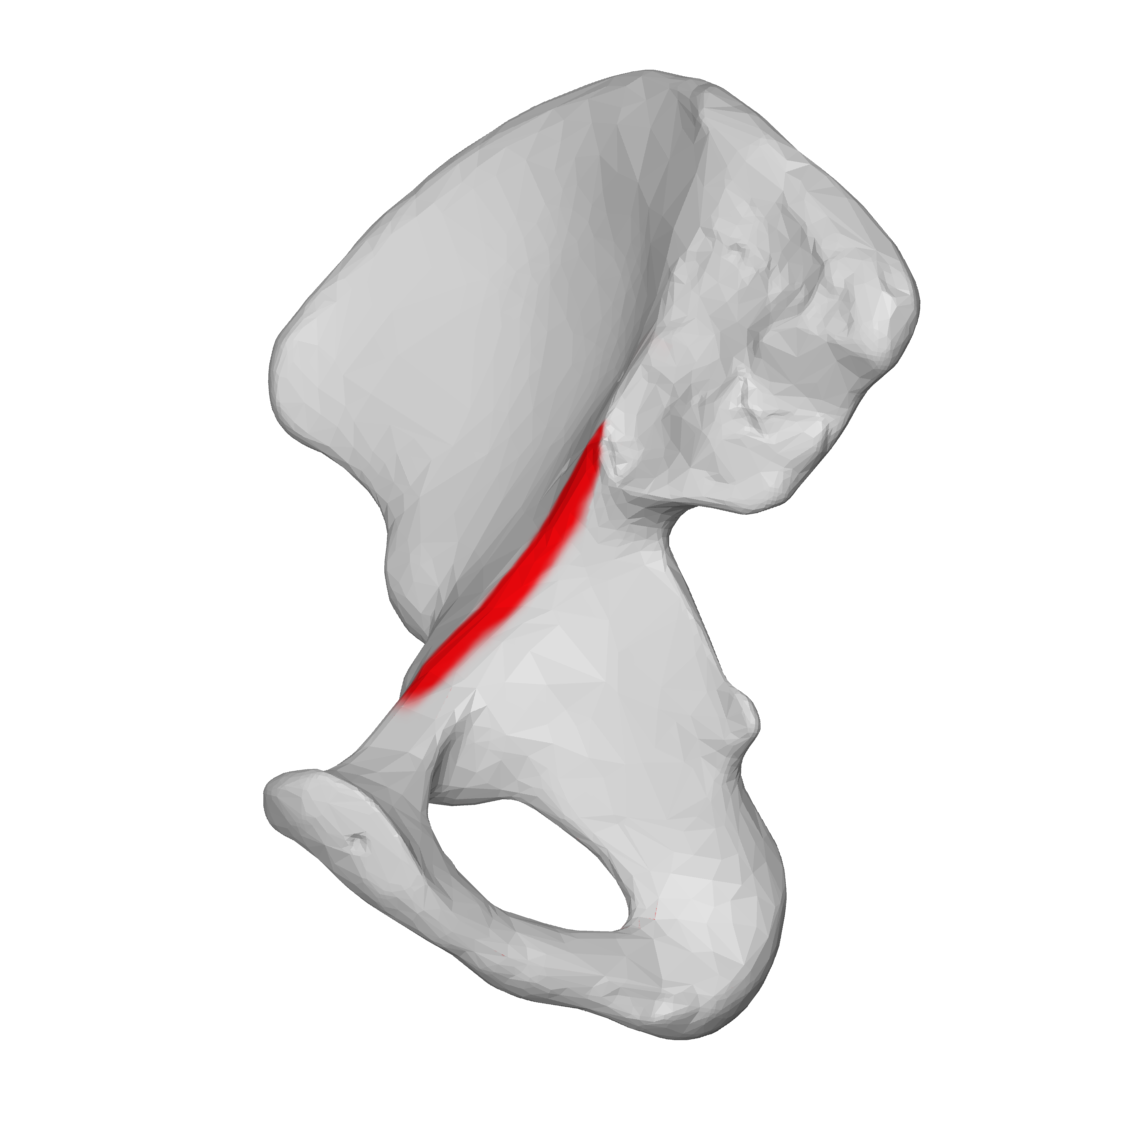 File:Arcuate line of ilium 04 medial view (Right hip bone).png ...